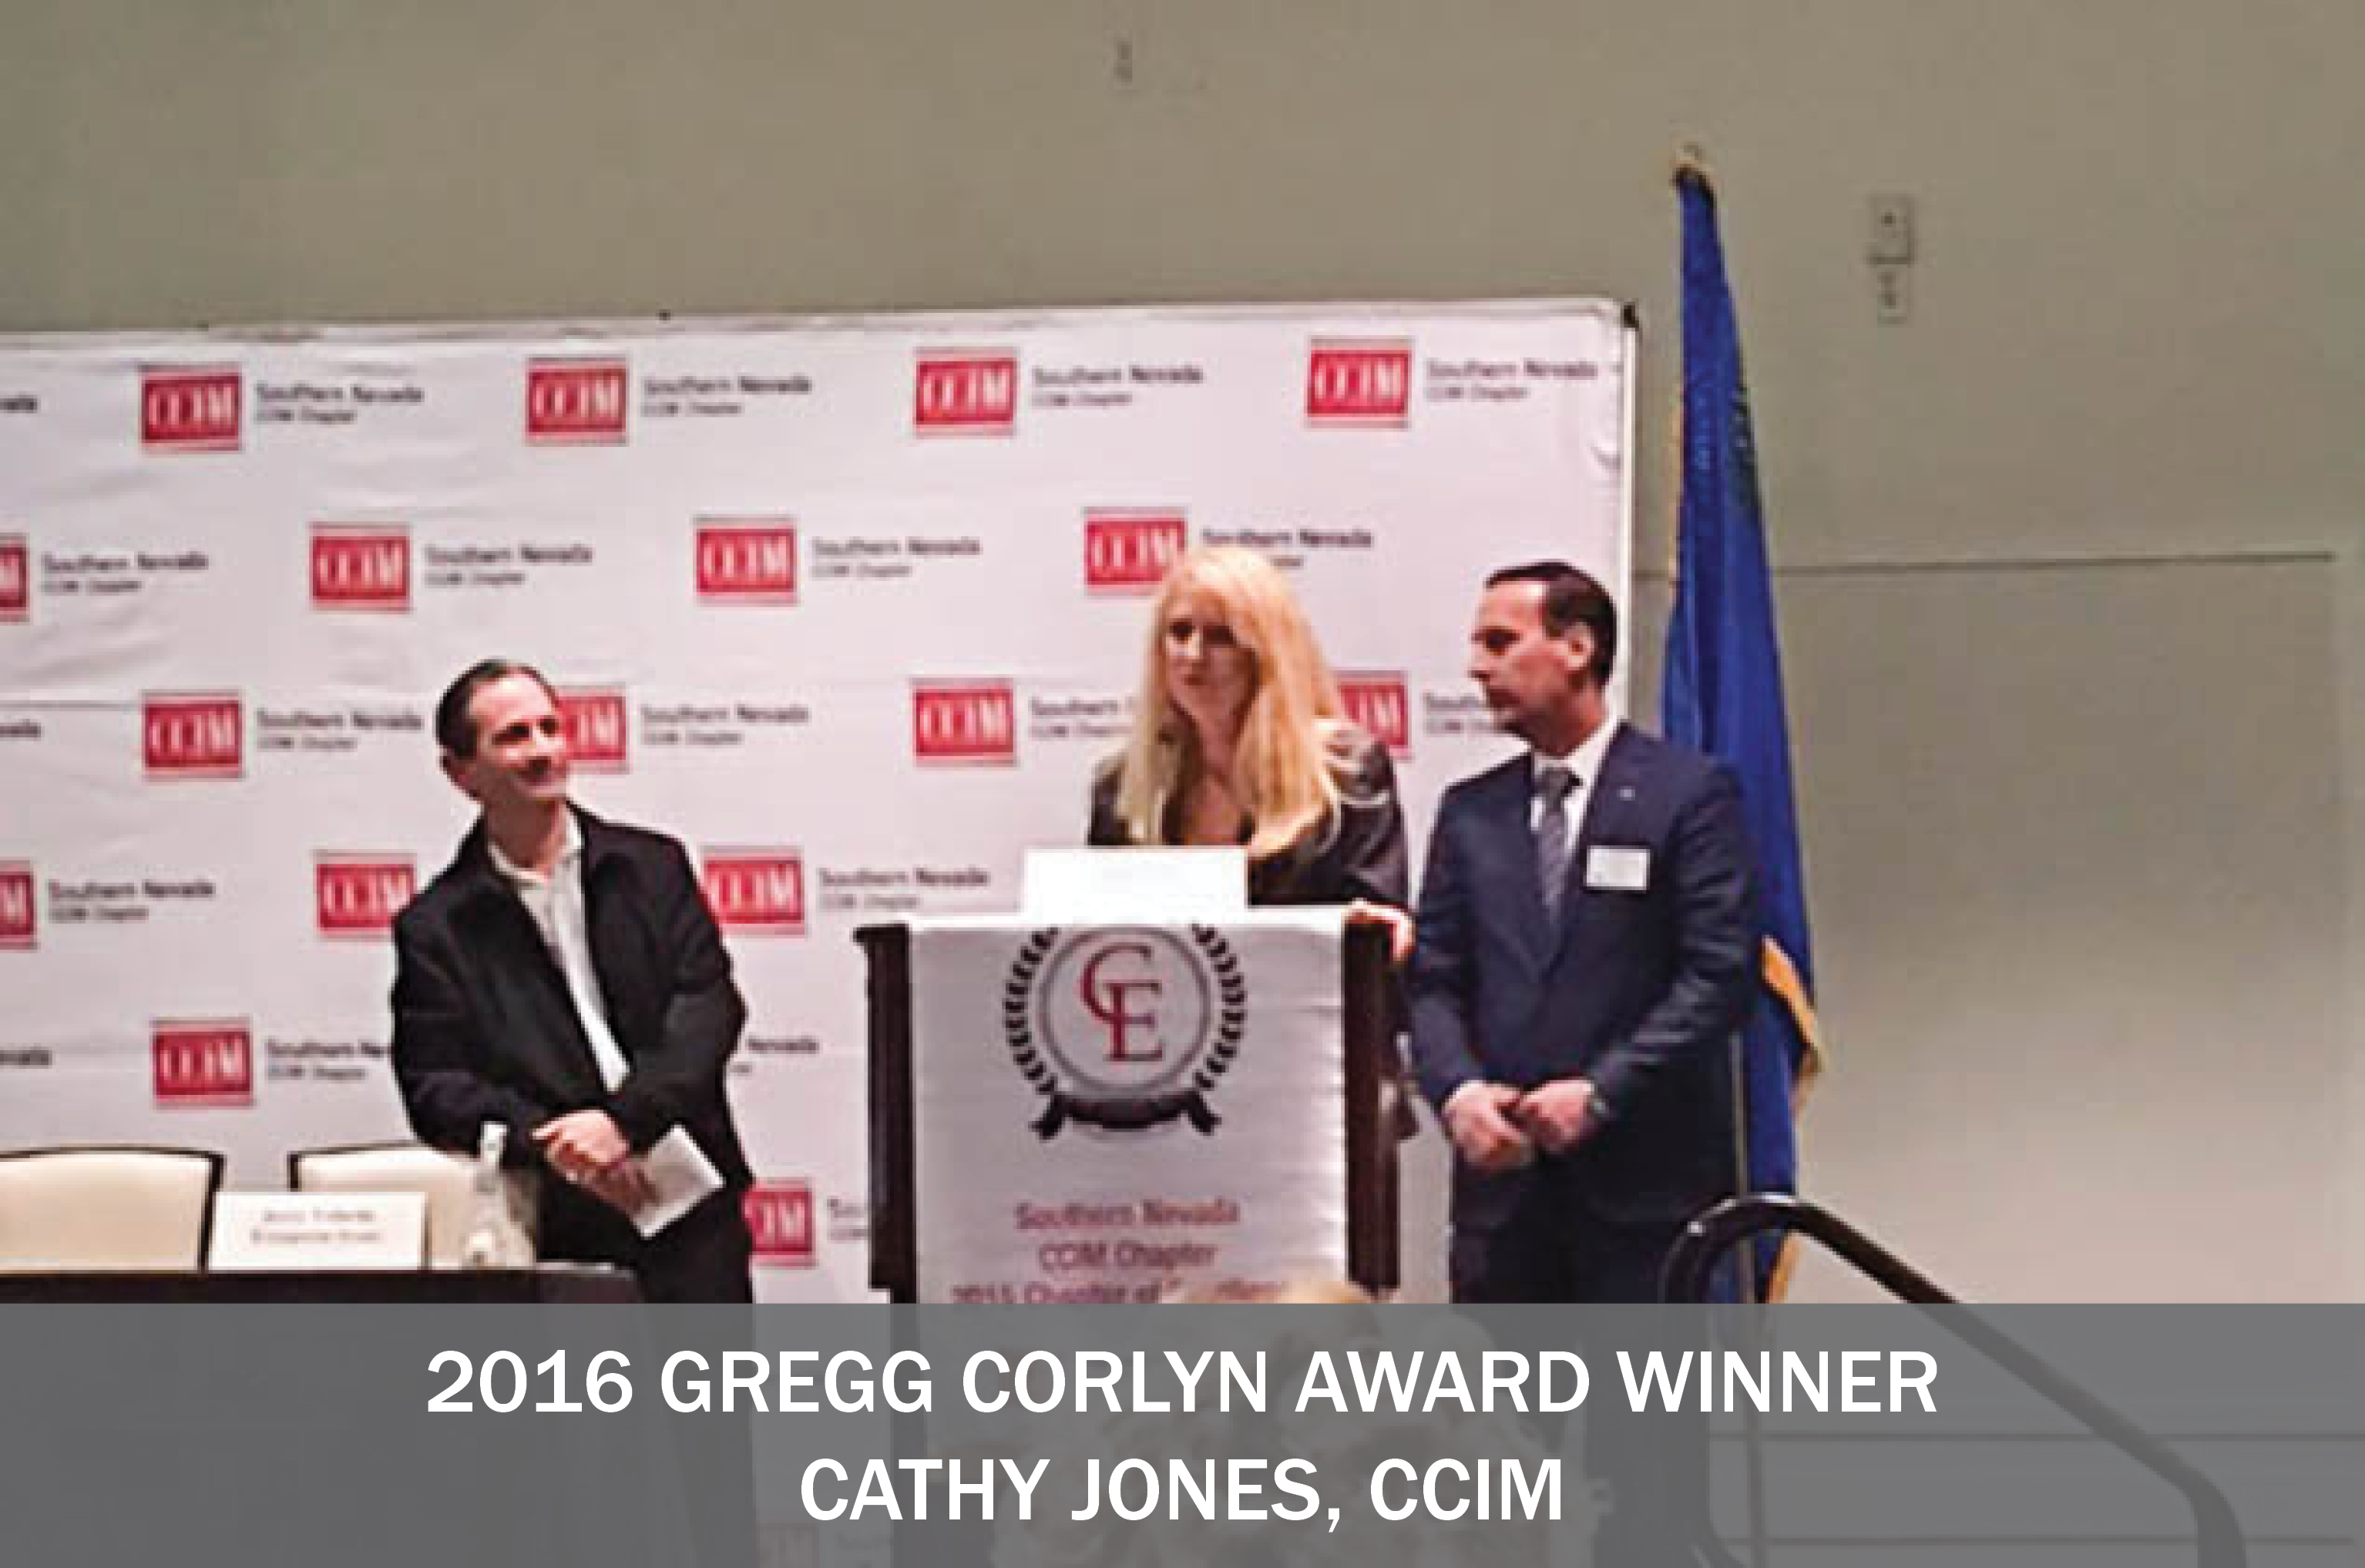 The 2016 Gregg Corlyn Award Goes To Cathy Jones, CCIM